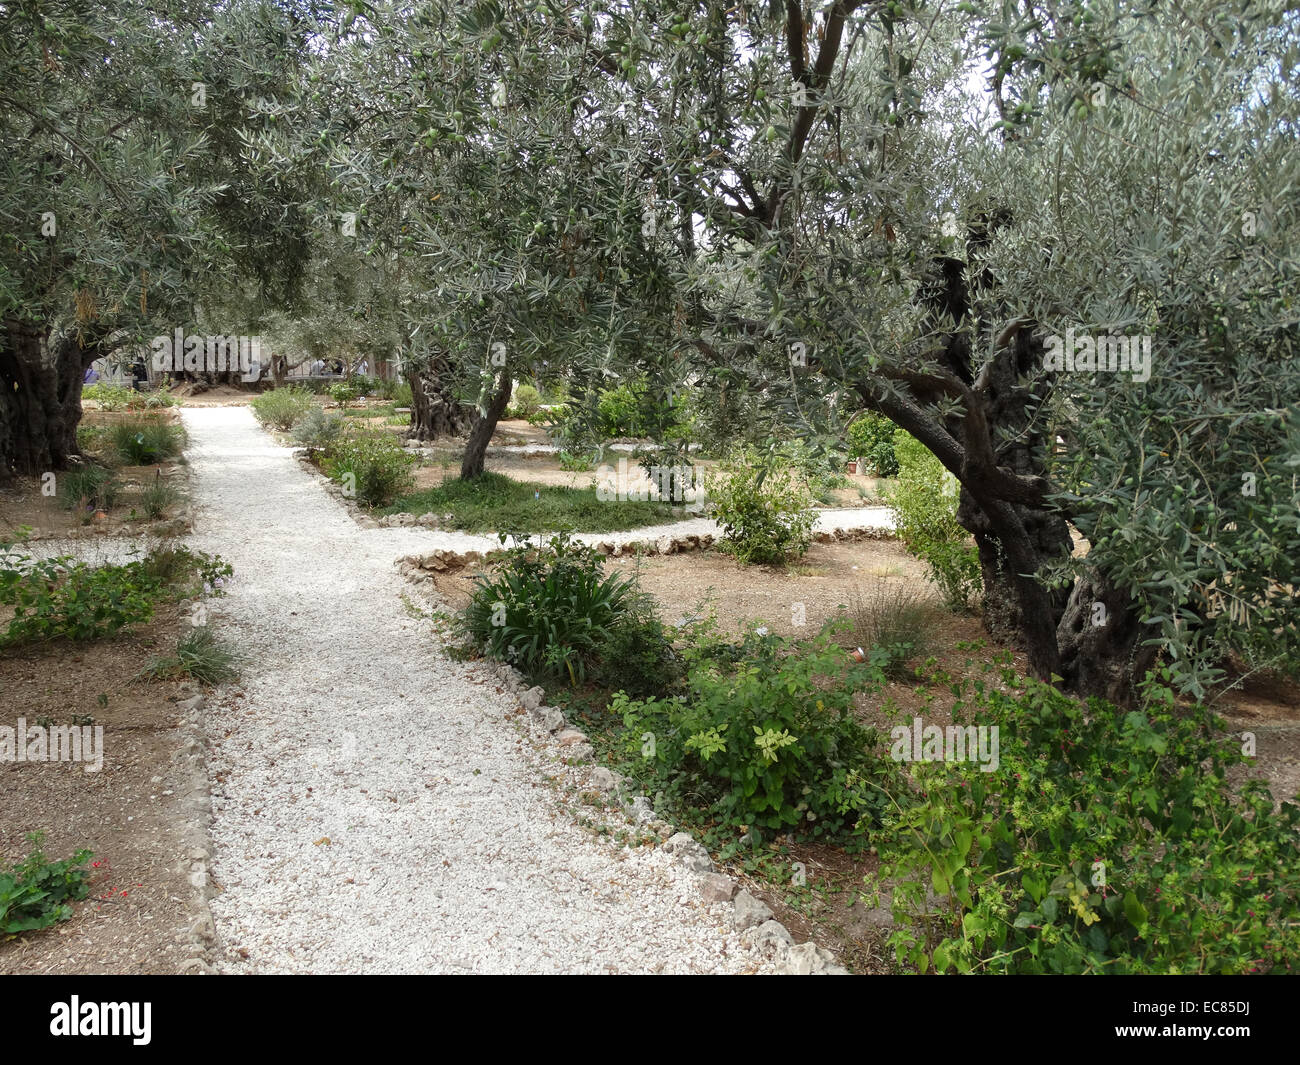 Olive Trees In The Garden Of Gethsemane At The Foot Of The Mount Of Olives  In